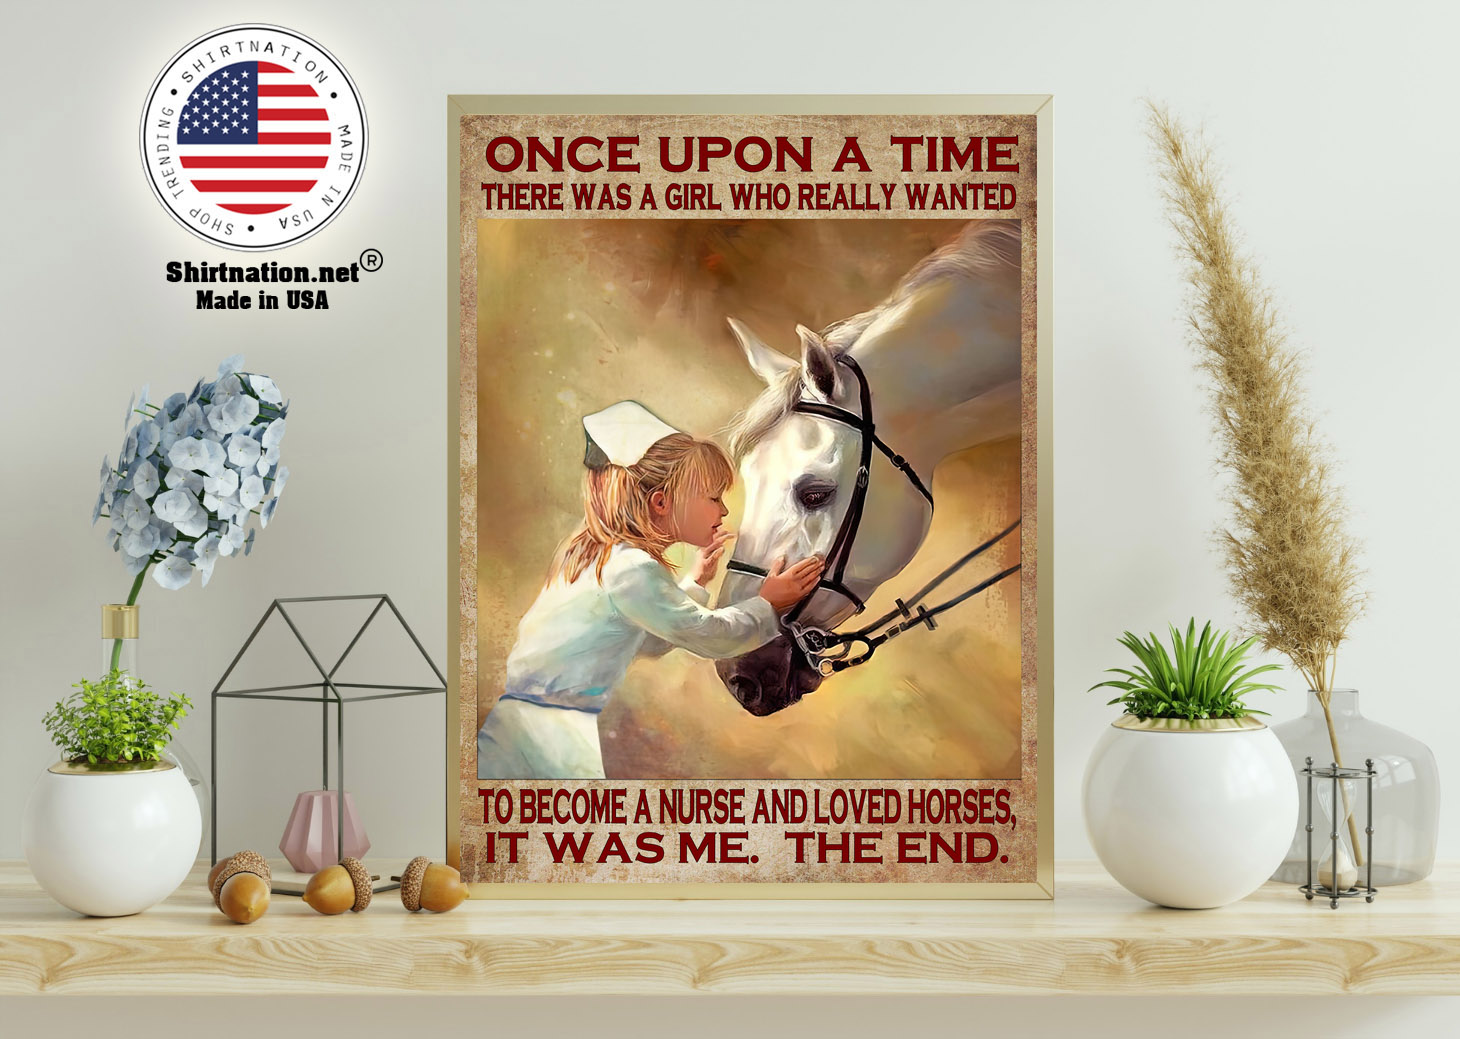 Once upon a time there was a girl who really wanted to become a nurse and loved horses poster 15 1